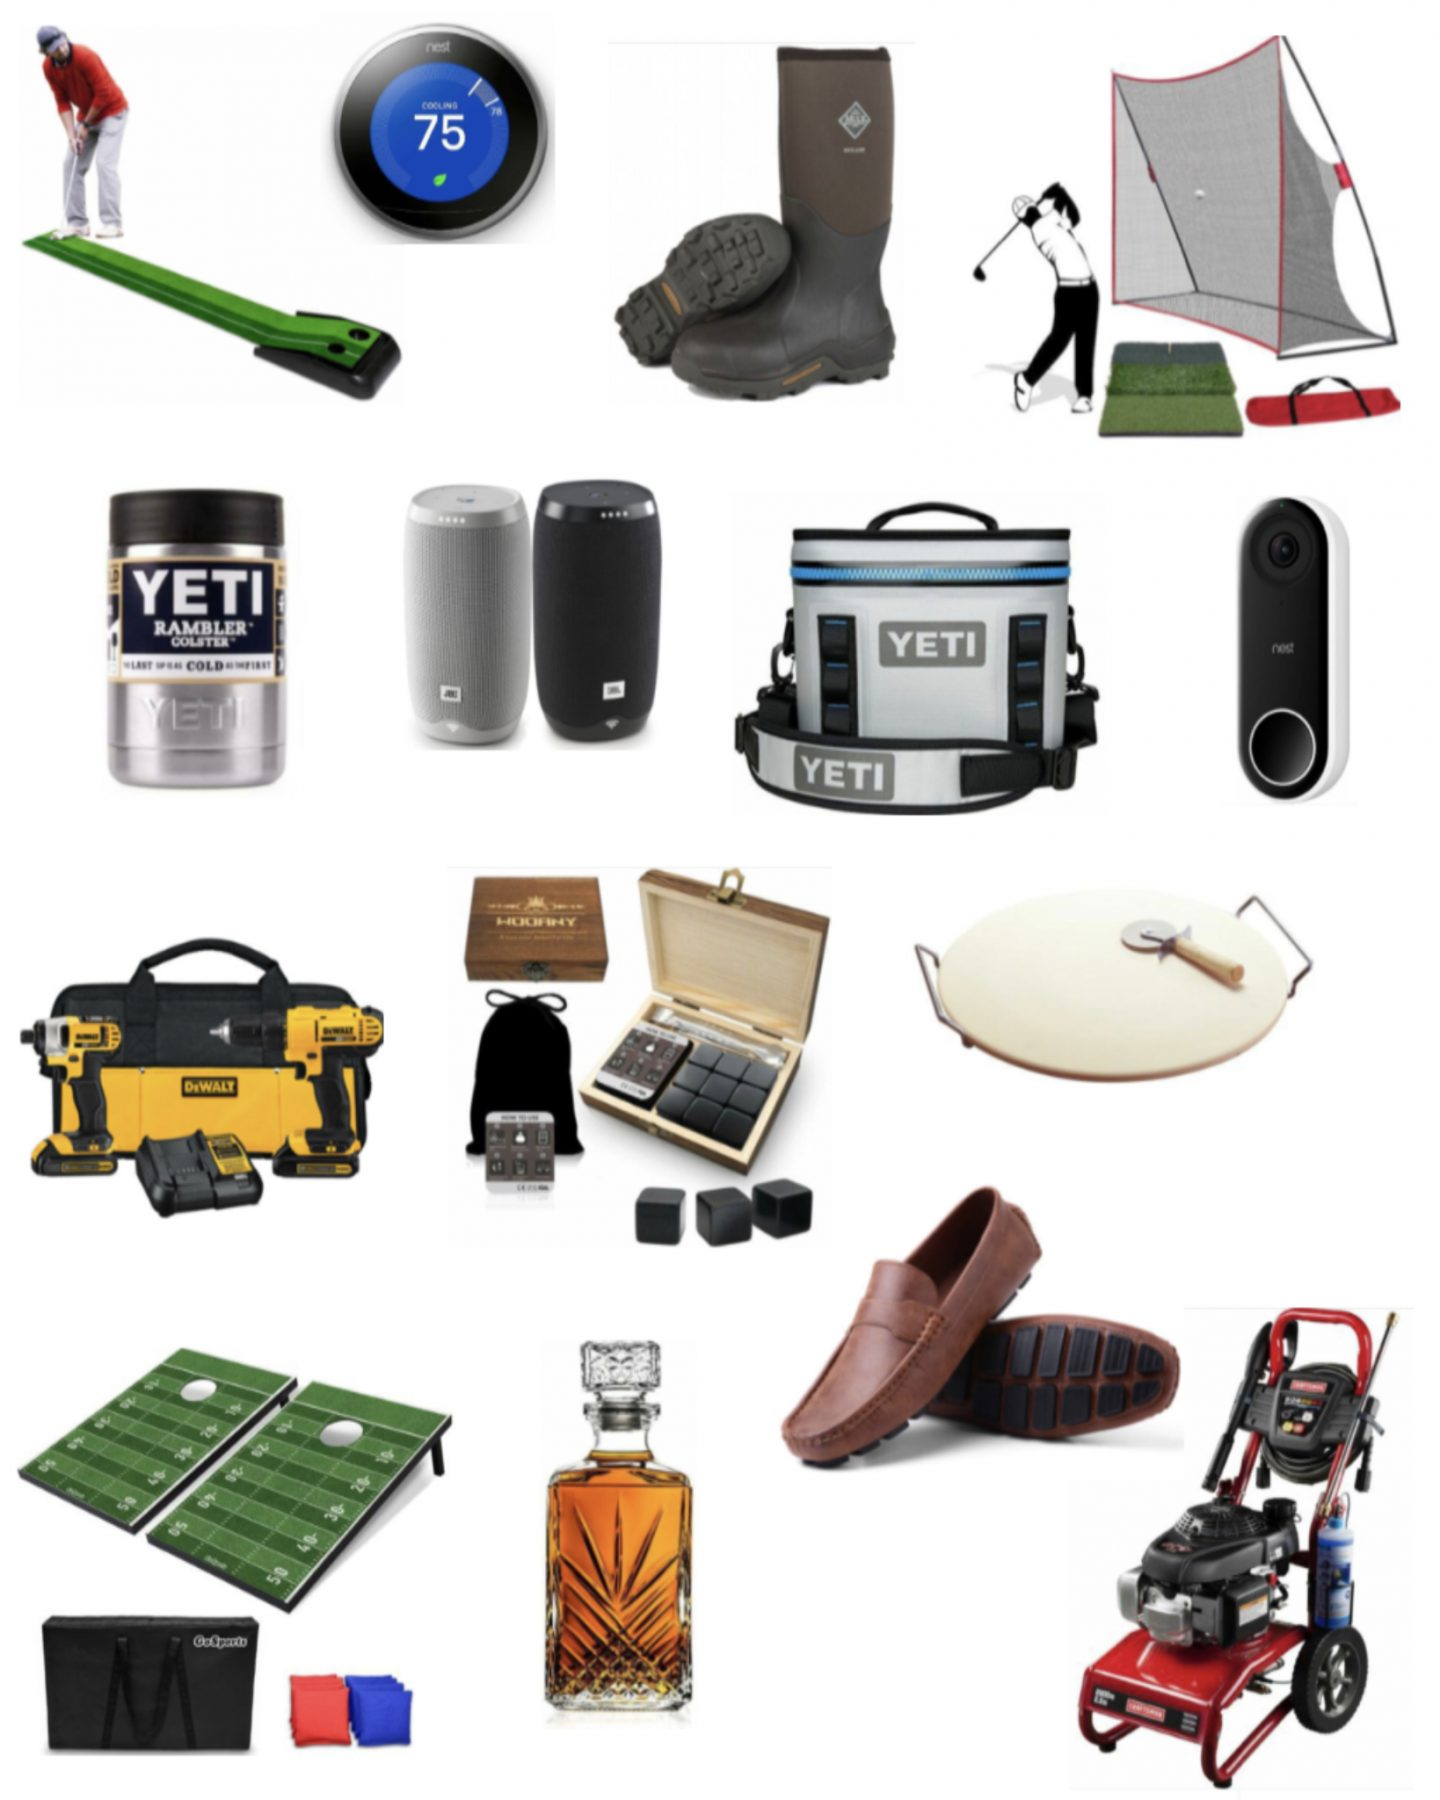 ebay father's day gifts / yeti cup/ bags game / decanter / mens shoes / pressure washer/ muck boots/ golf putting green /pizza stone / bose speakers / nest thermostat / nest camera / yeti cooler / whiskey stones / whiskey decanter